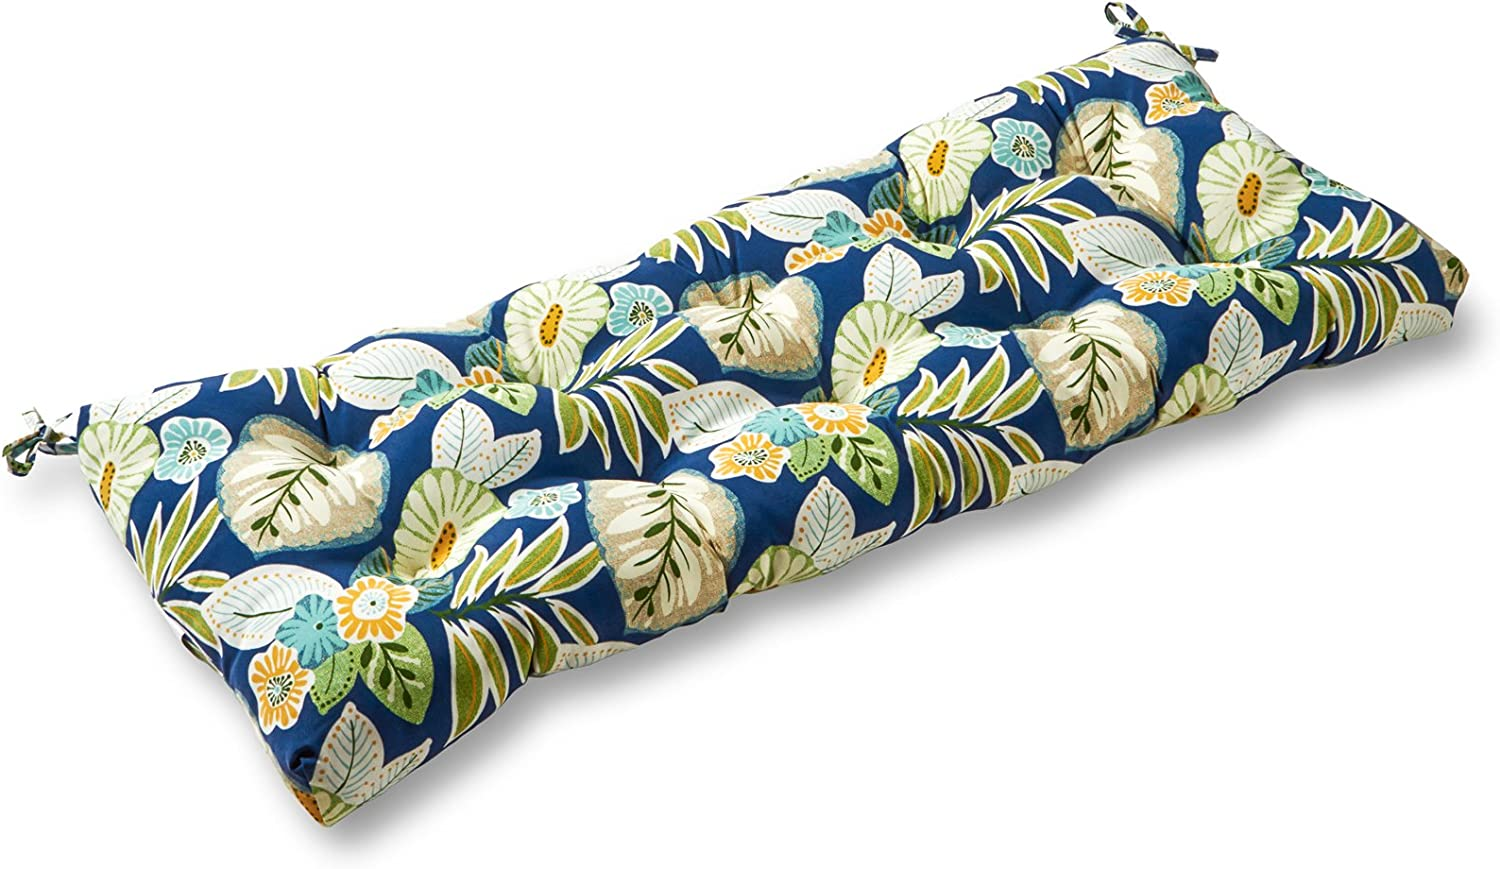 Greendale Home Fashions AZ4805-MARLOW Magnolia Floral 44-inch Outdoor Swing/Bench Cushion